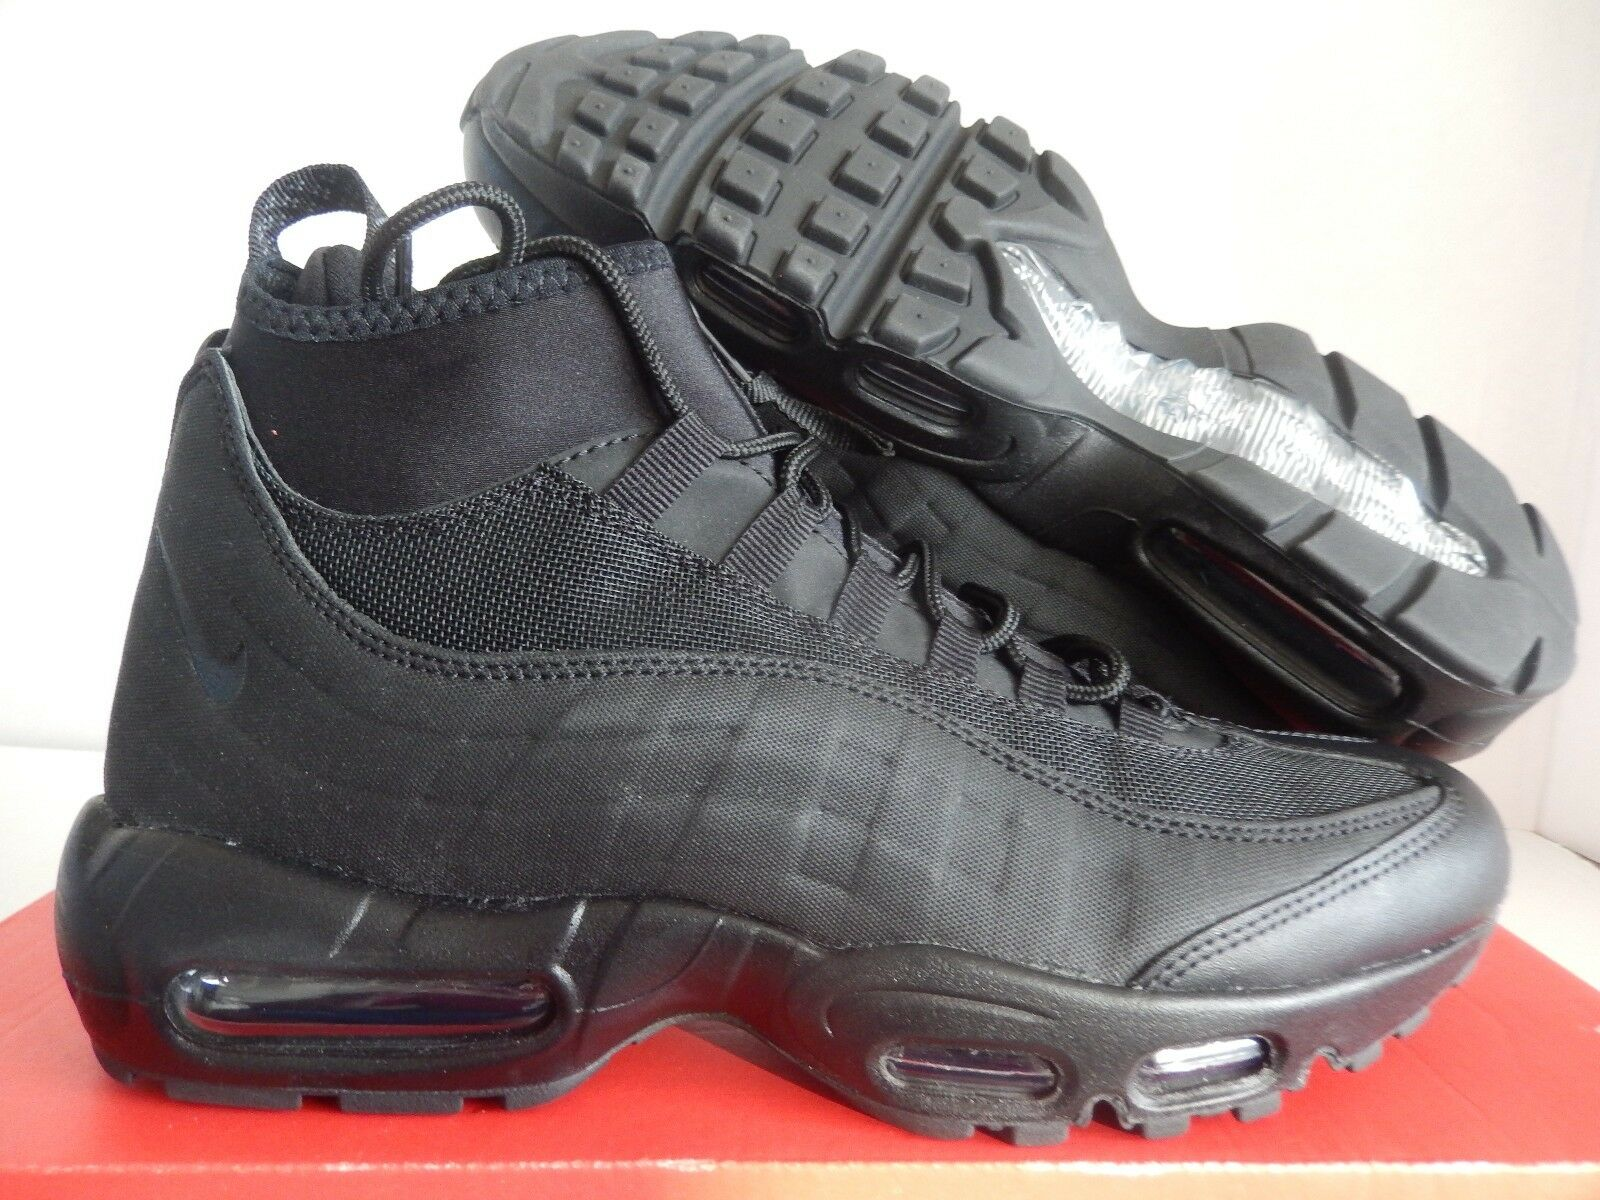 c87a413045fda1 Nike Air Max 95 Sneakerboot Mens Size 8 Triple Black 806809 002 for ...